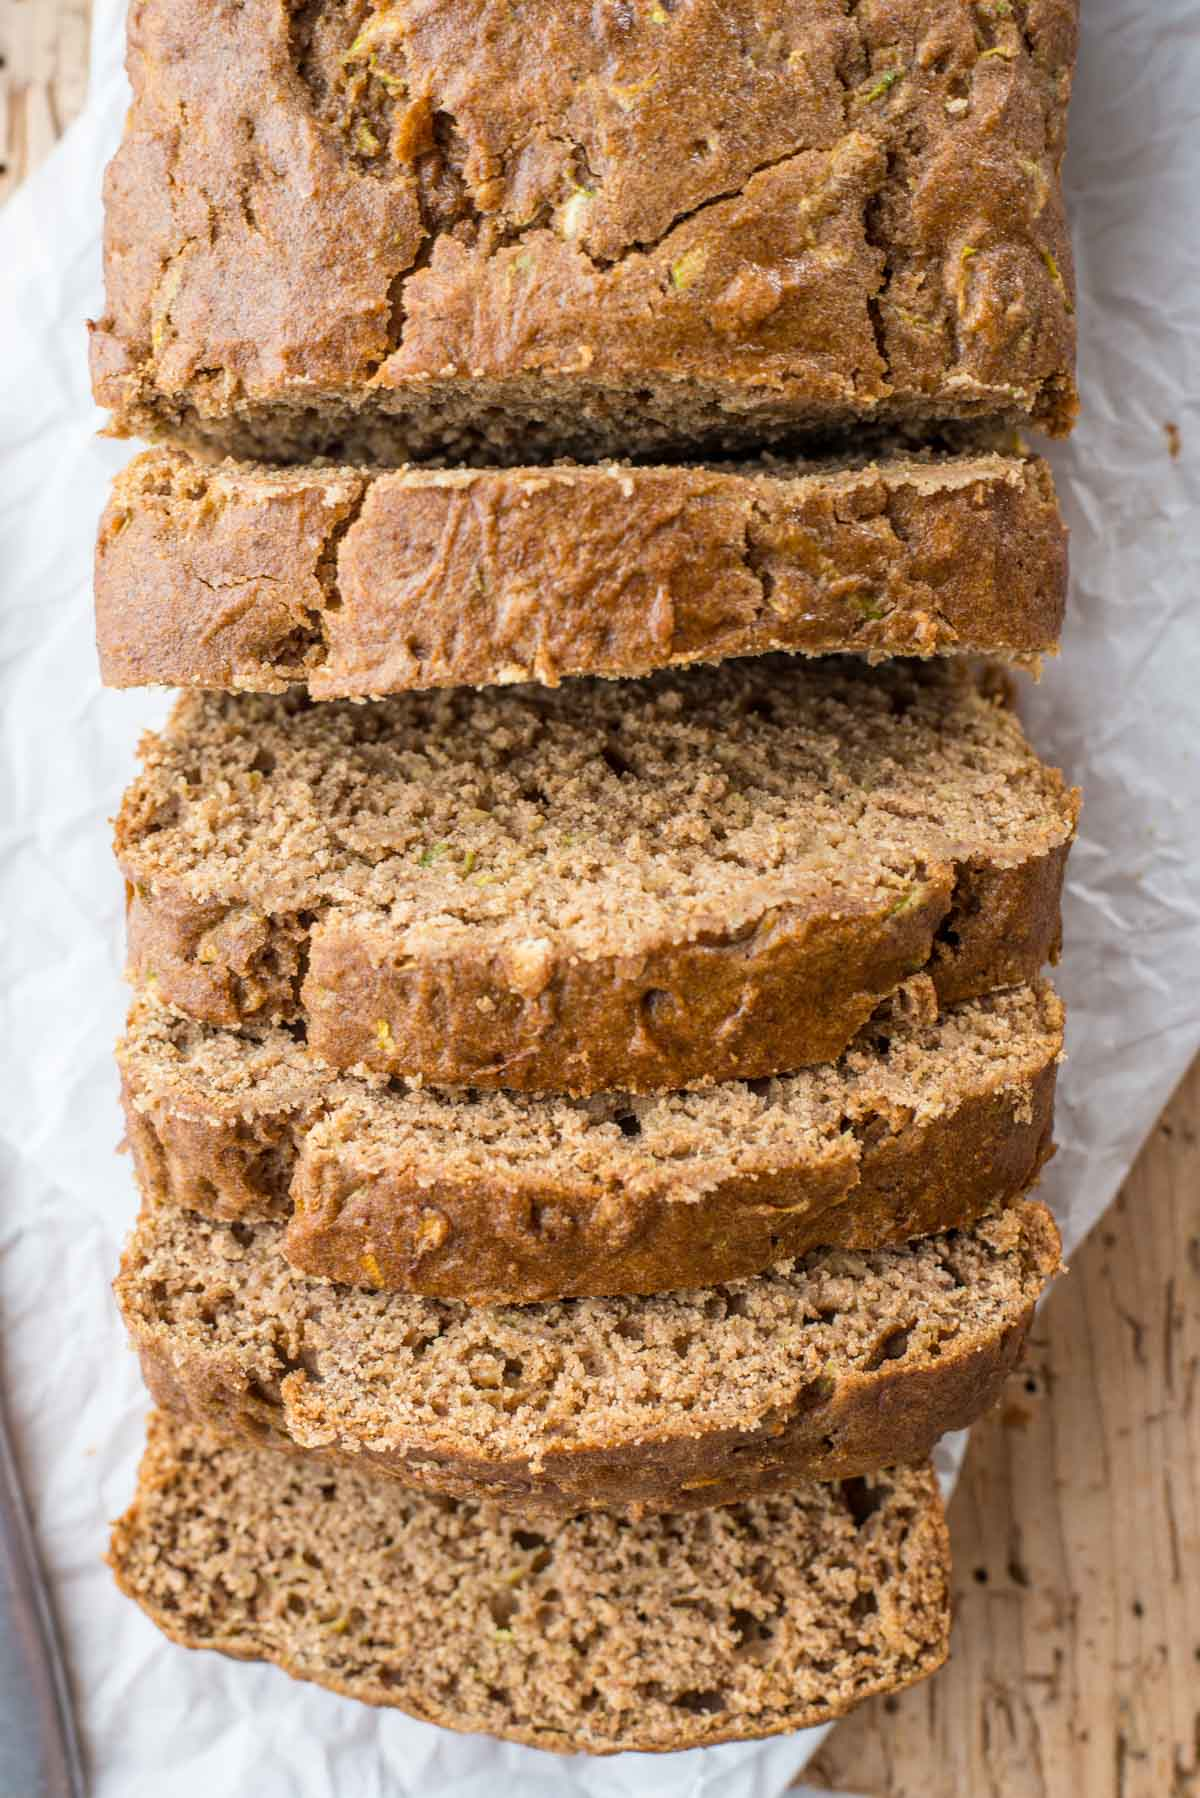 Try this high fiber, high protein spiced gluten-free zucchini bread with this easy recipe.